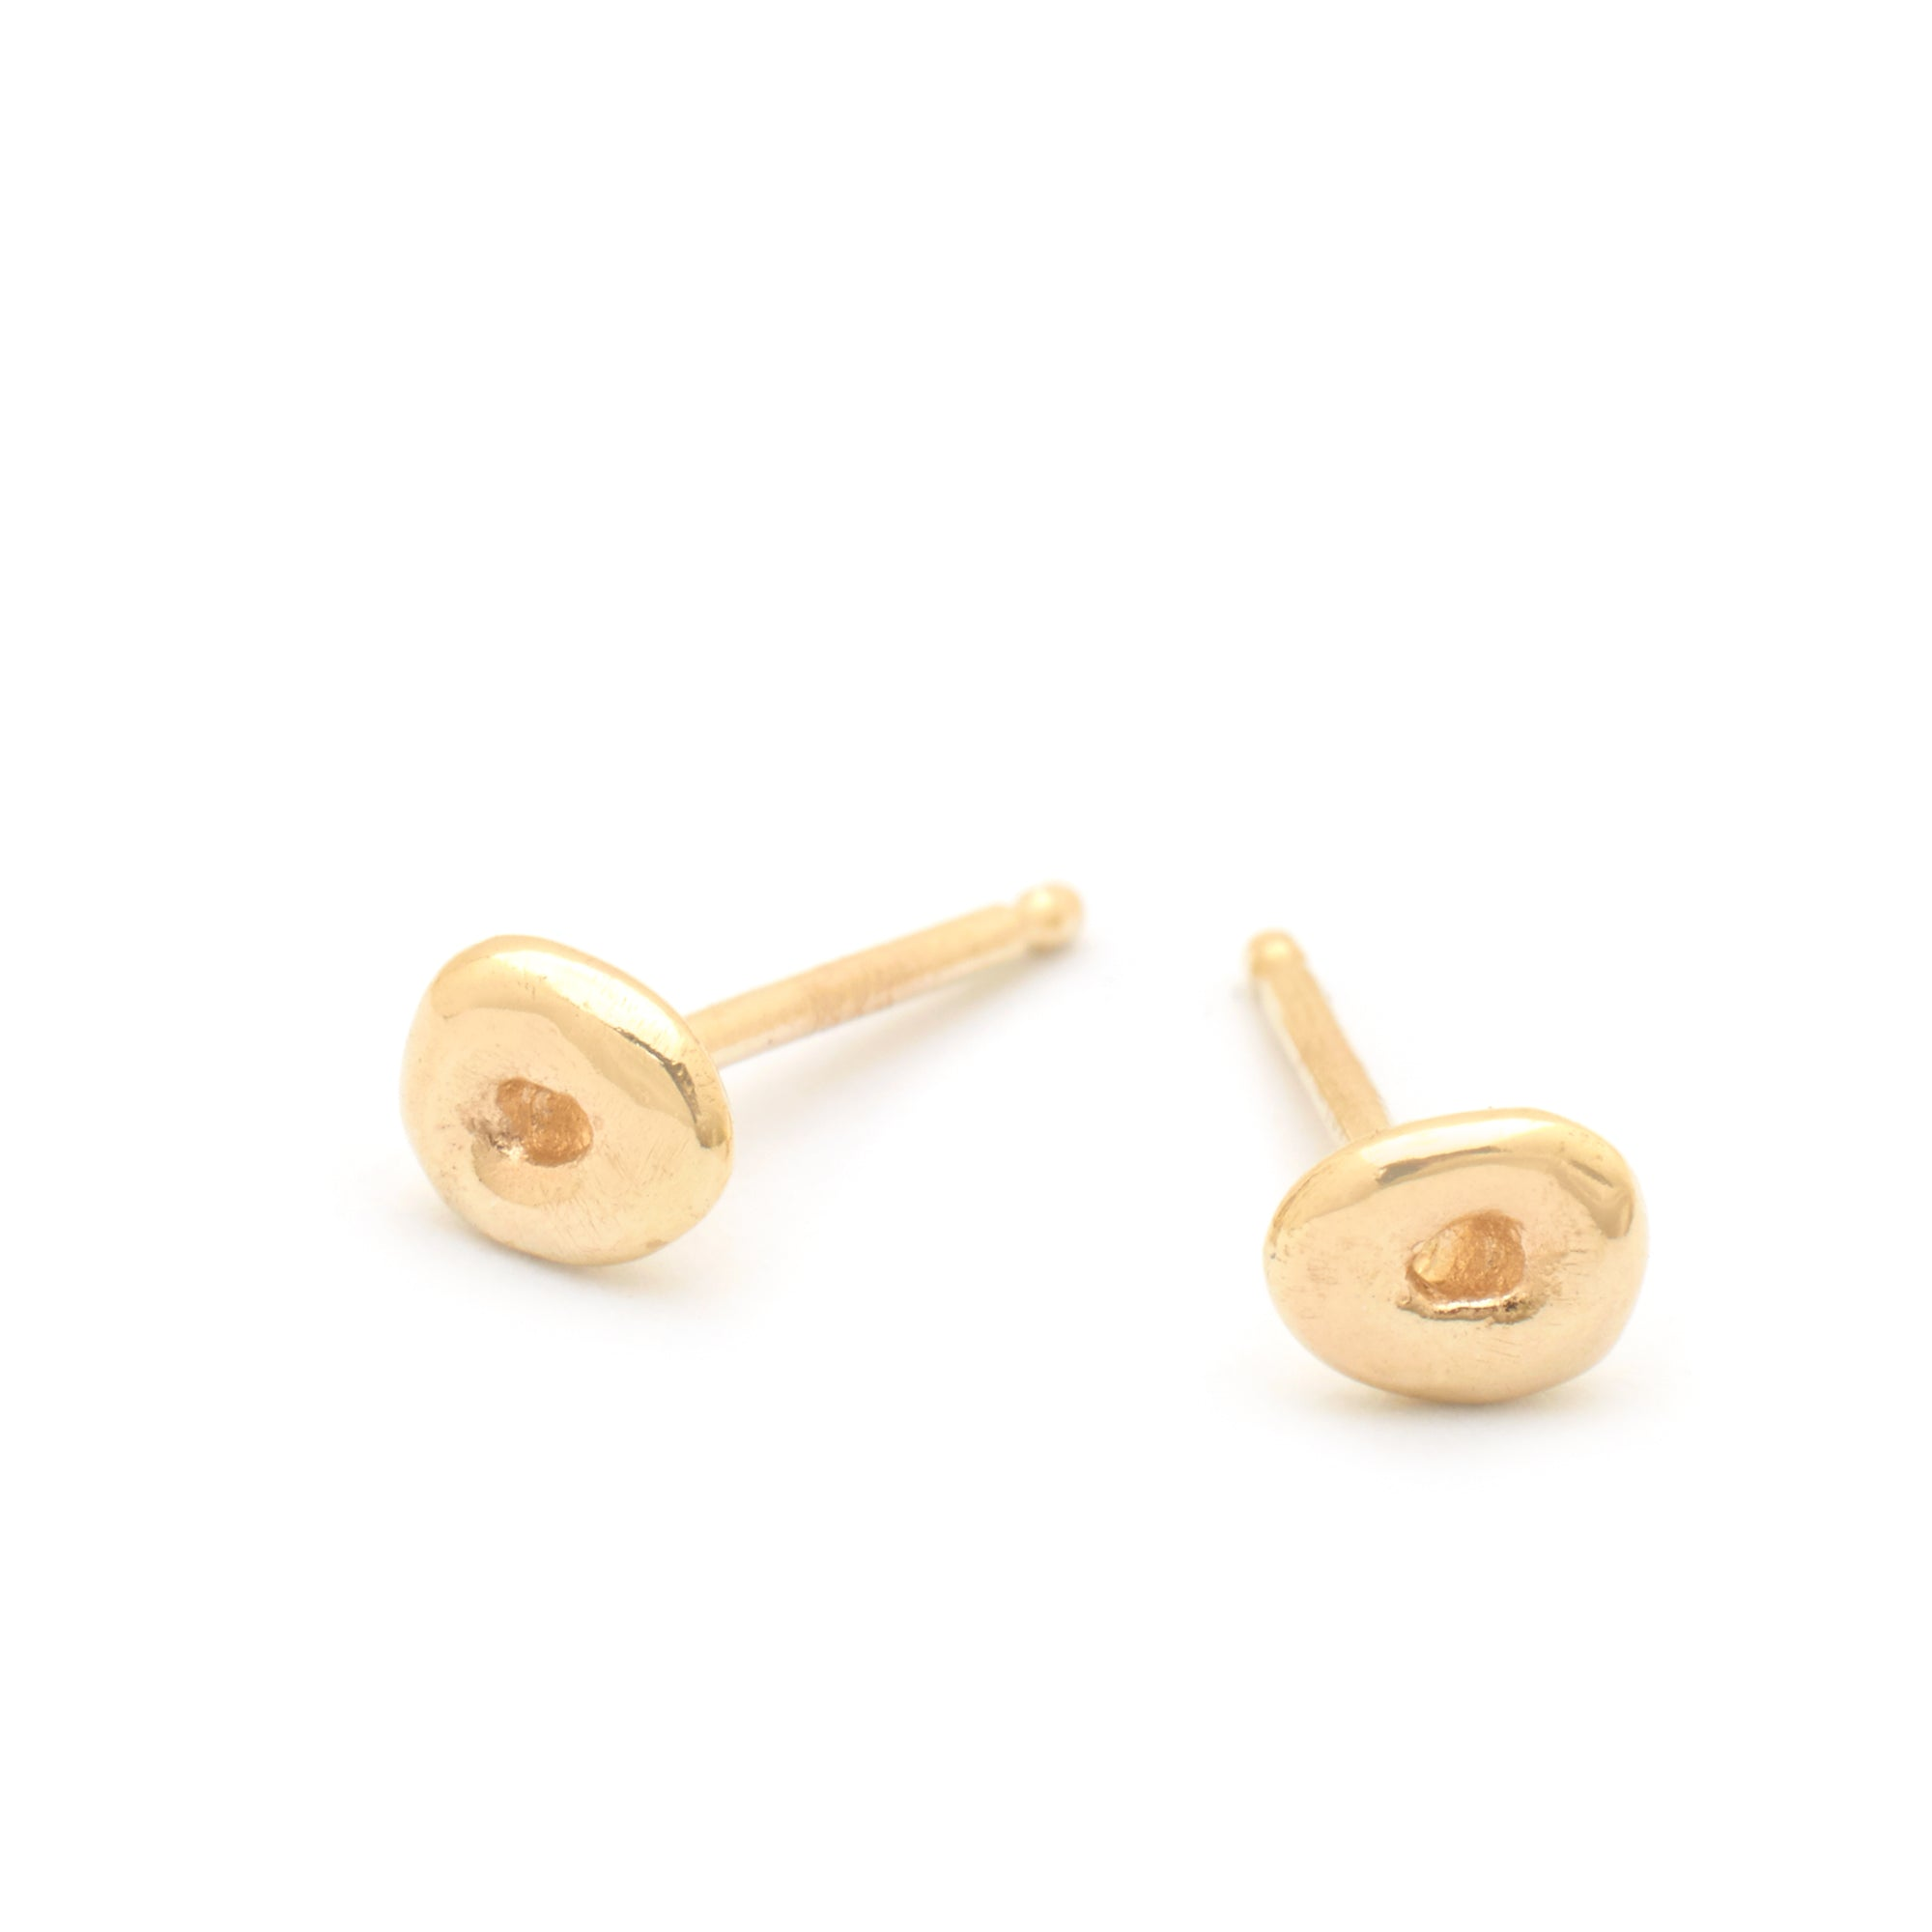 Freckle Gold Stud Earrings - Johanna Brierley Jewellery Design